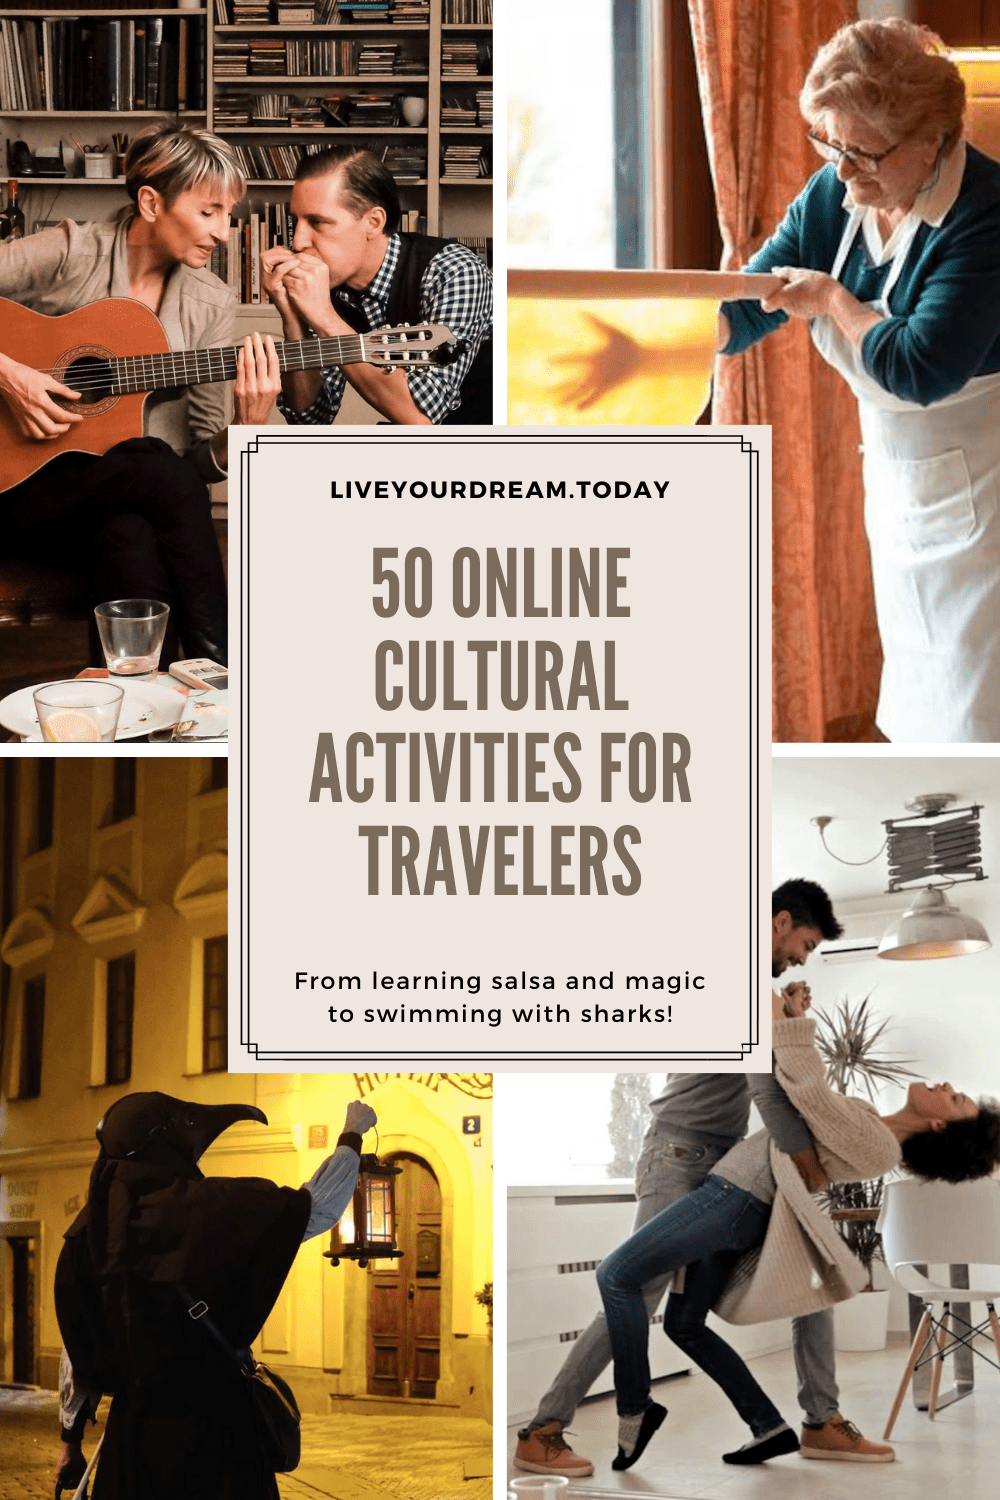 50 online cultural activities for travelers